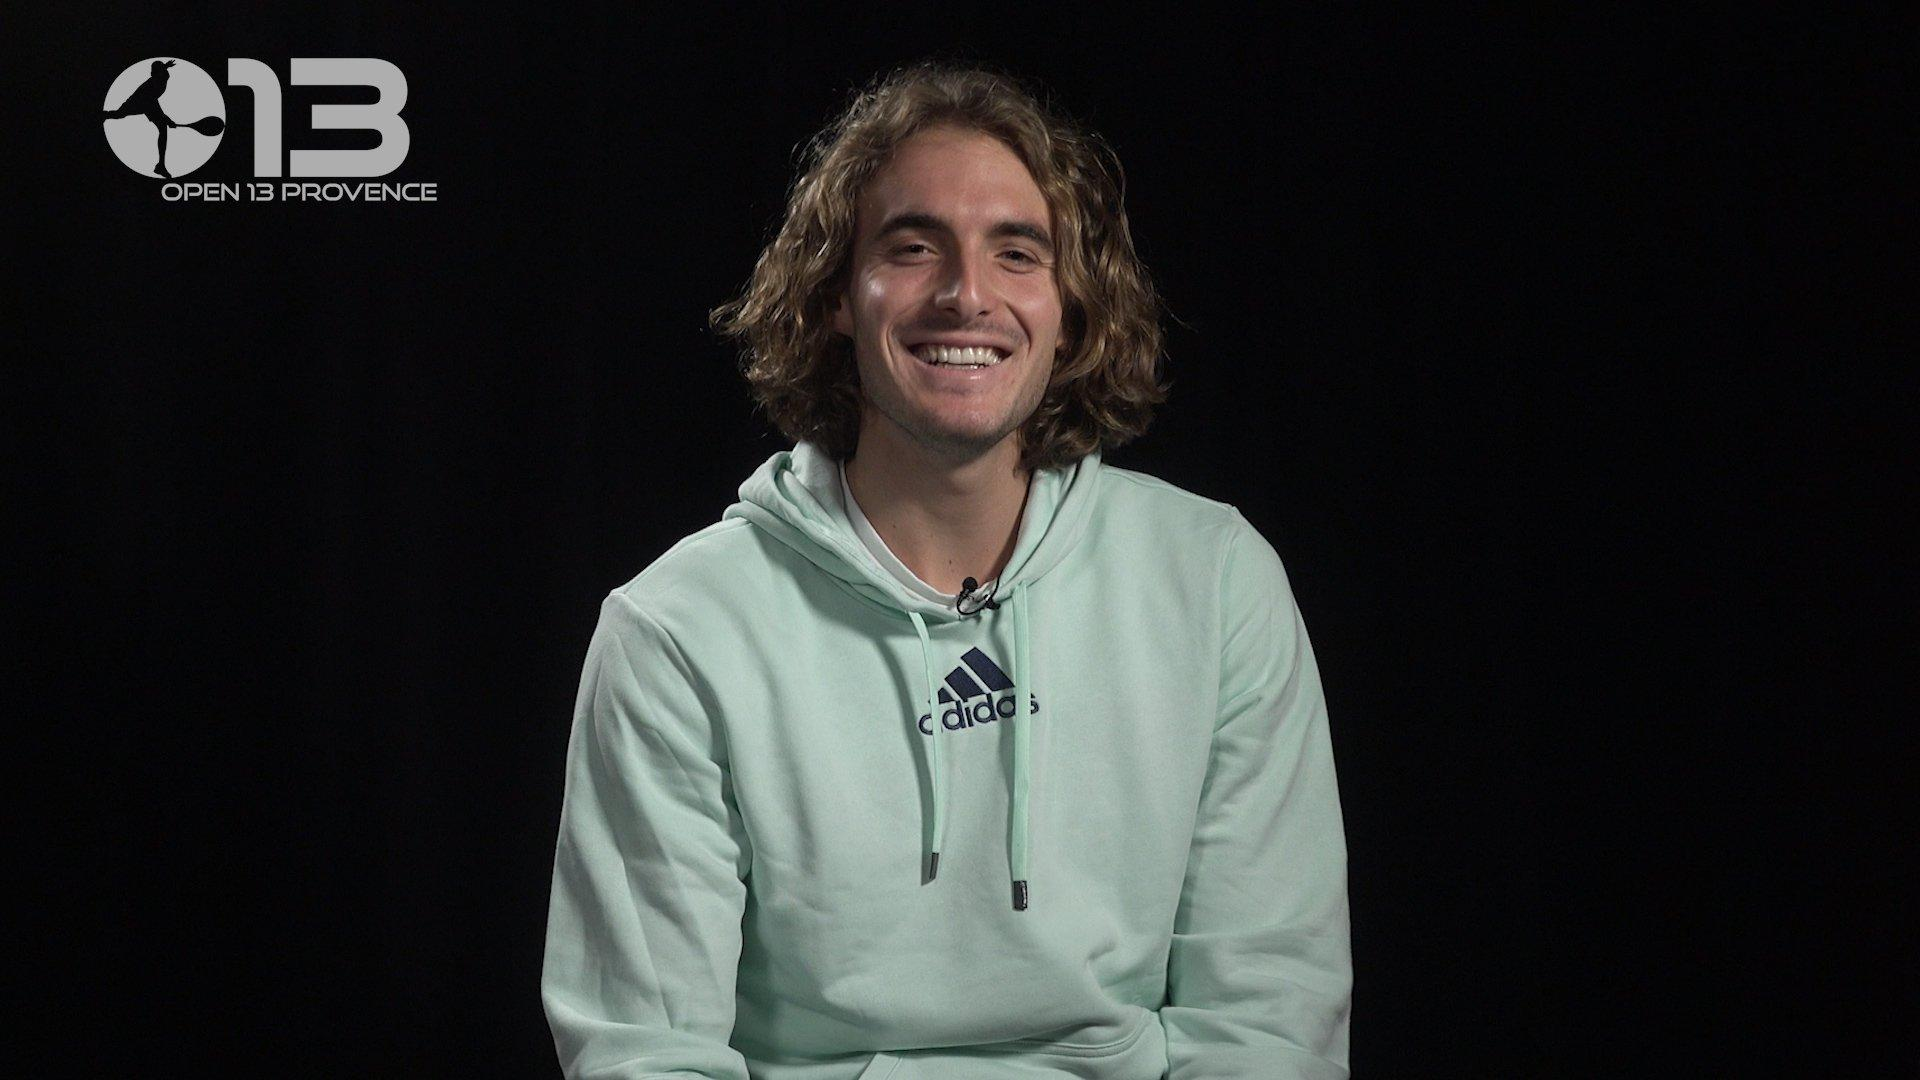 PLAYER'S BOX WITH STEFANOS TSITSIPAS